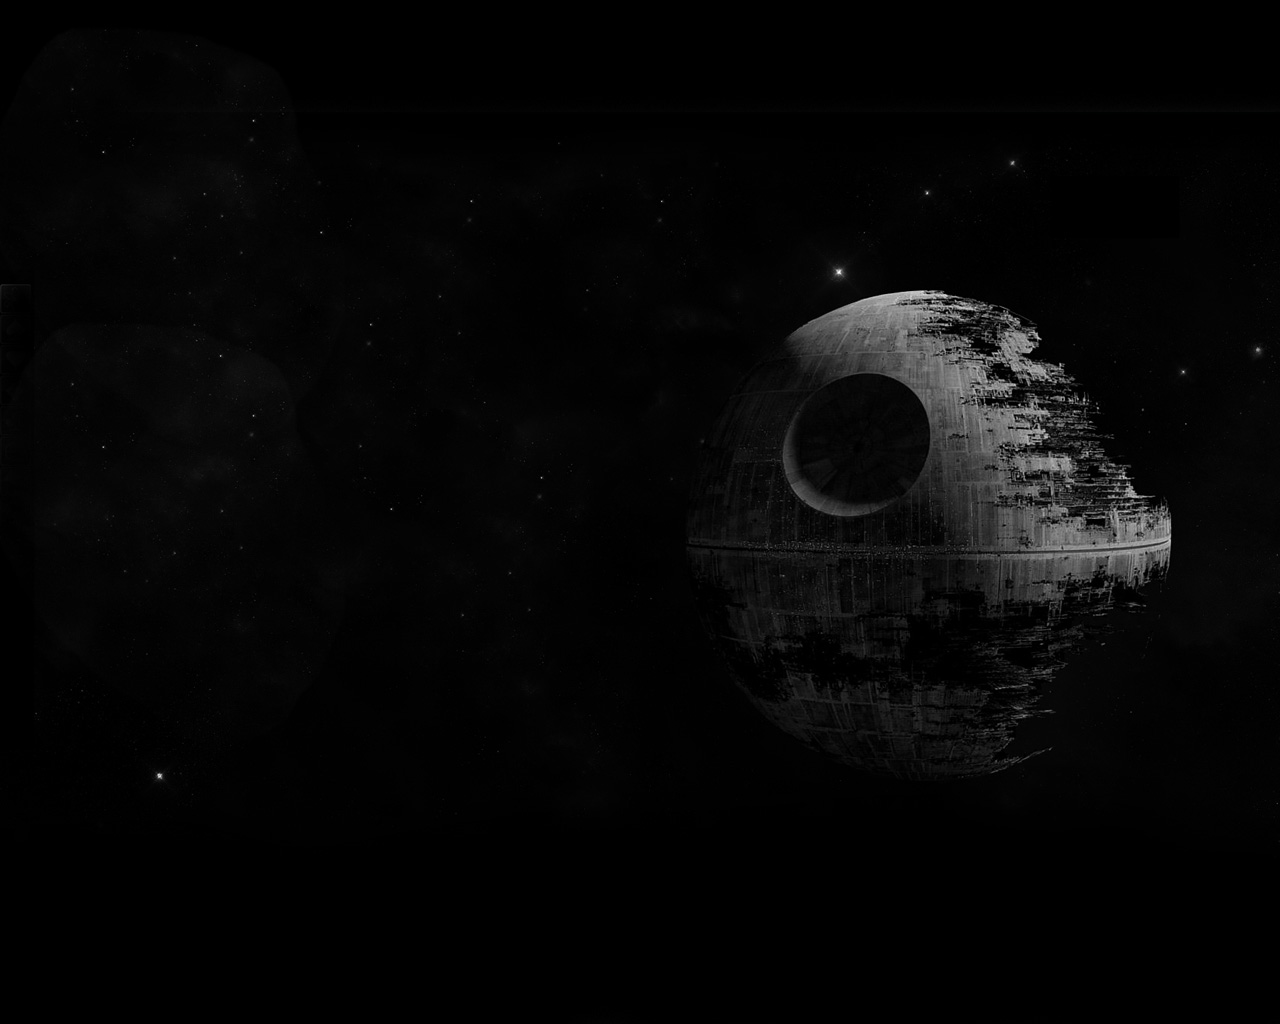 Star Wars Wallpaper Pictures Cool Things Collection 1280x1024